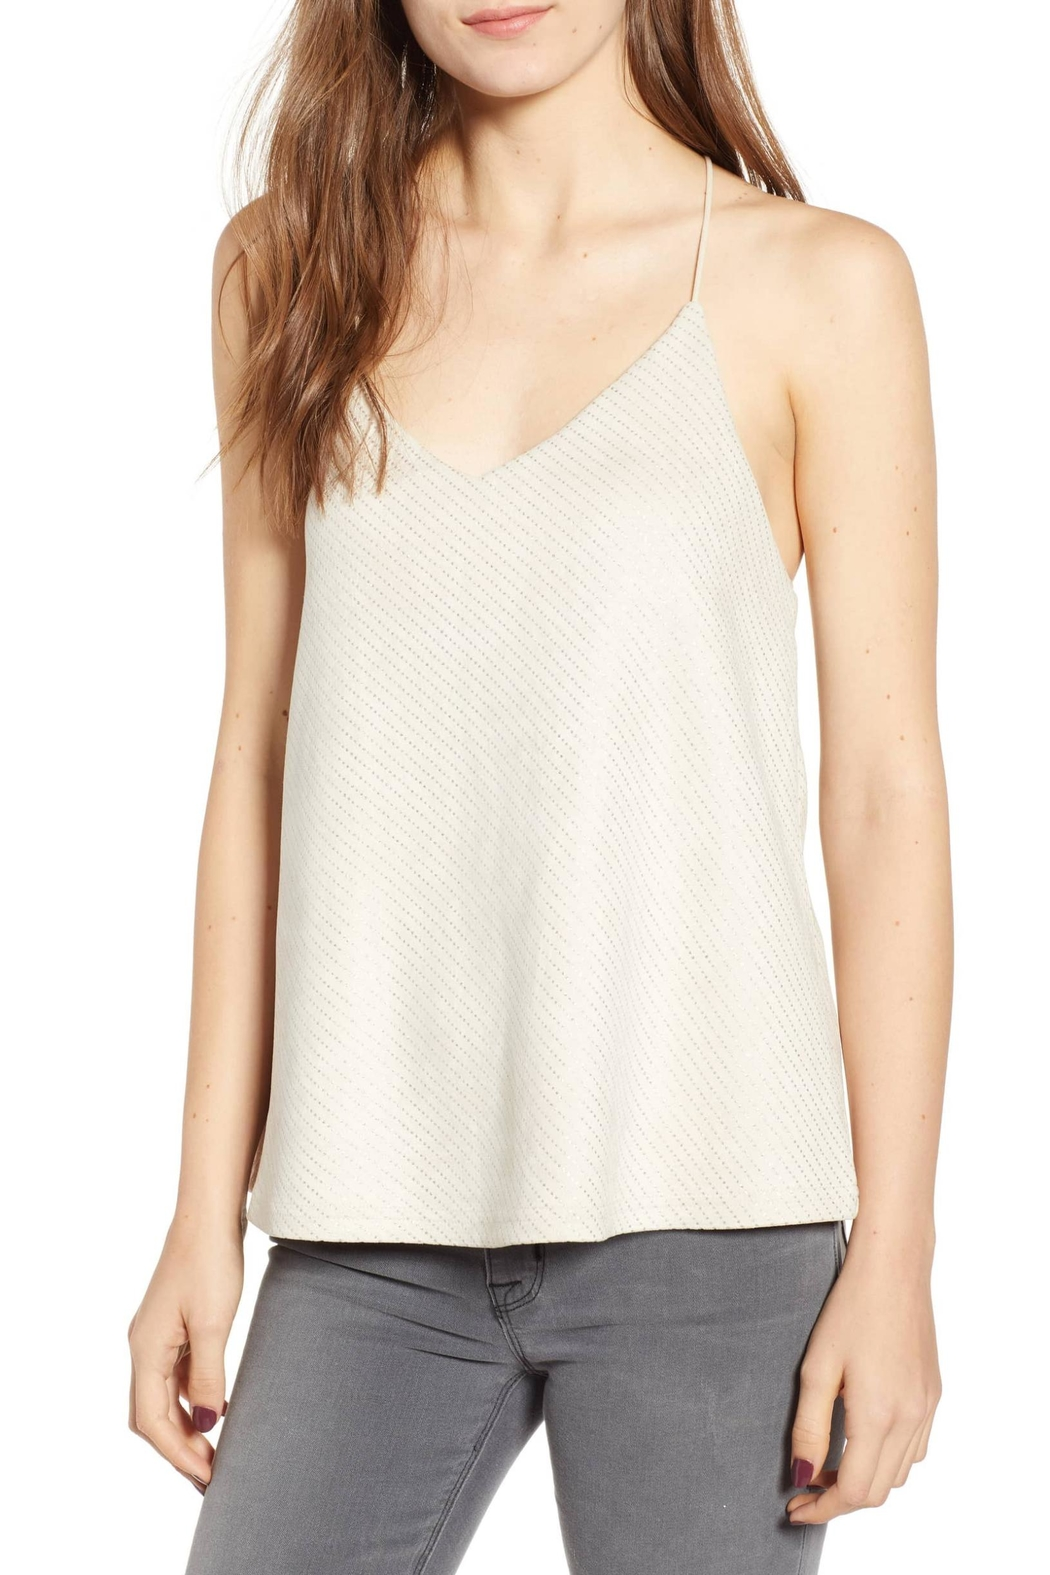 Bishop + Young Micro-Stud Faux-Suede Camisole - Main Image